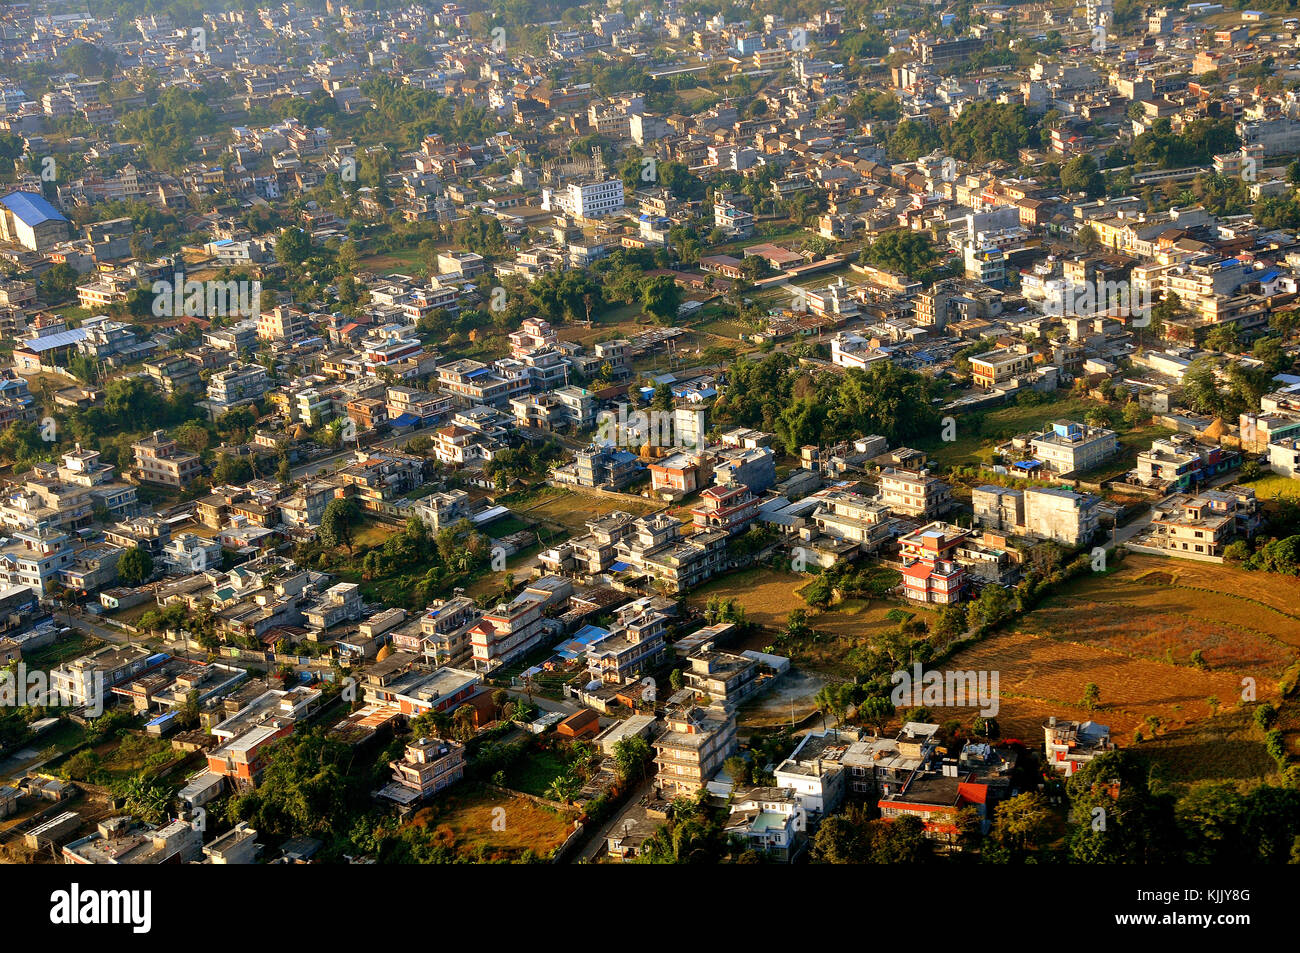 Aerial view of Pokhara. Nepal. - Stock Image